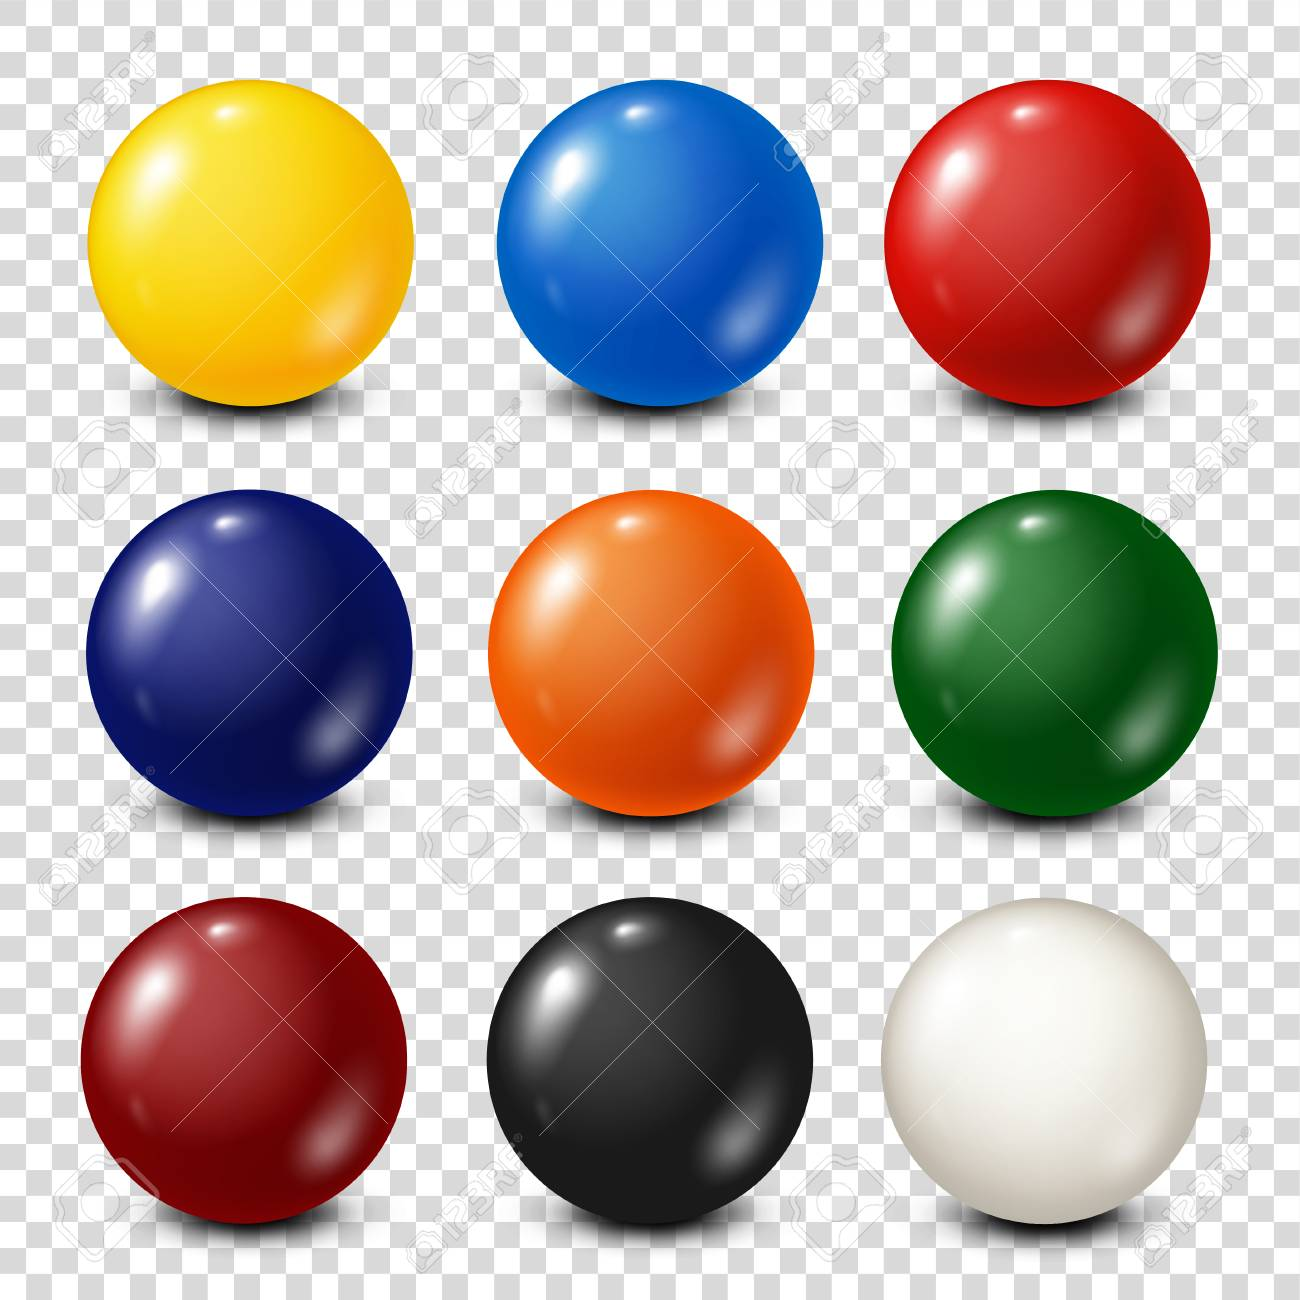 Lottery, billiard,pool balls collection. Snooker. Transparent background. Vector illustration. - 87425582